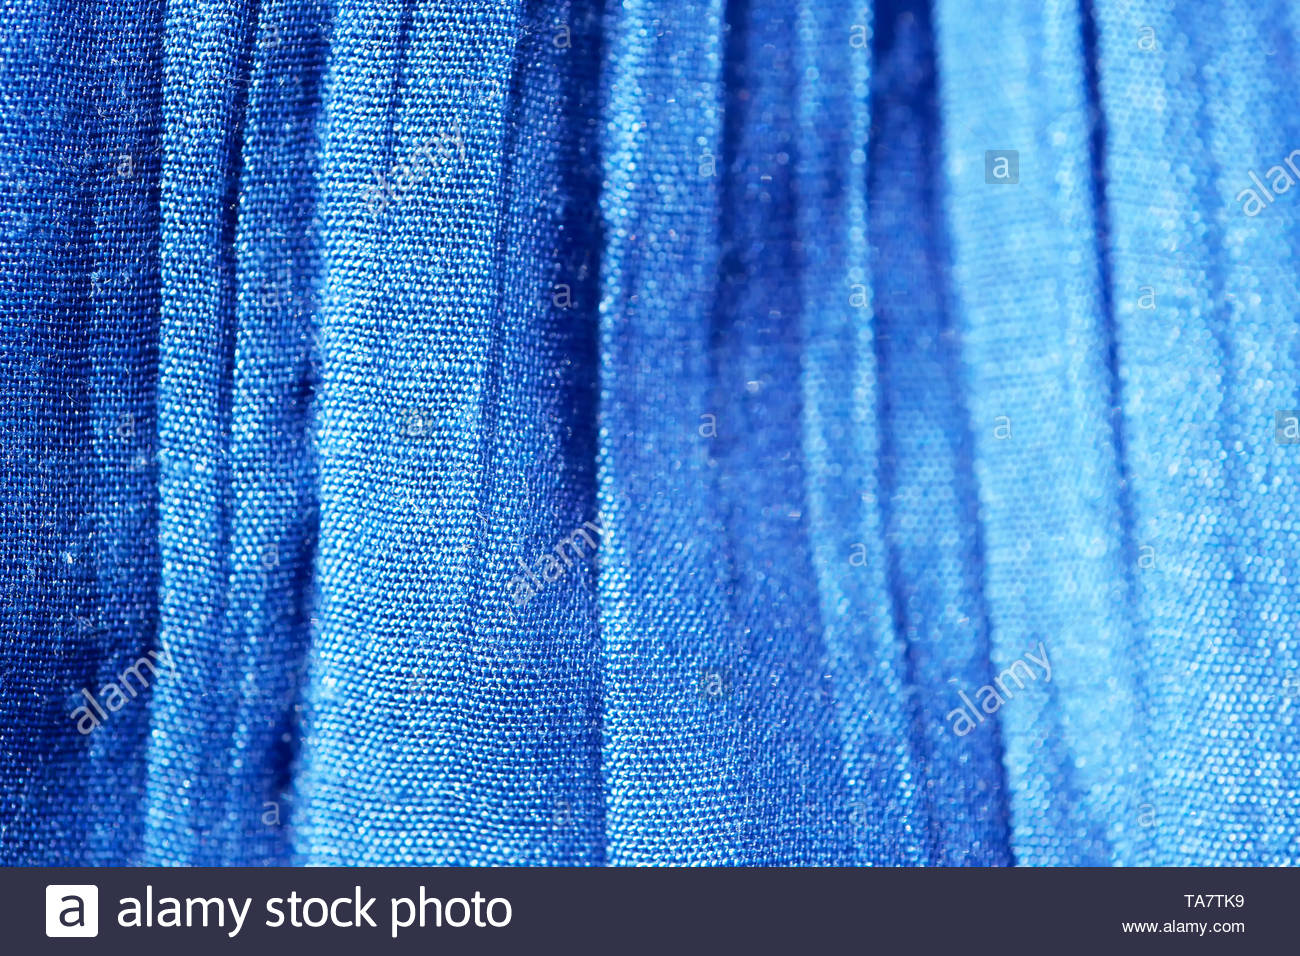 Blue background of fabric weaving cotton threads close-up macro shot - Stock Image